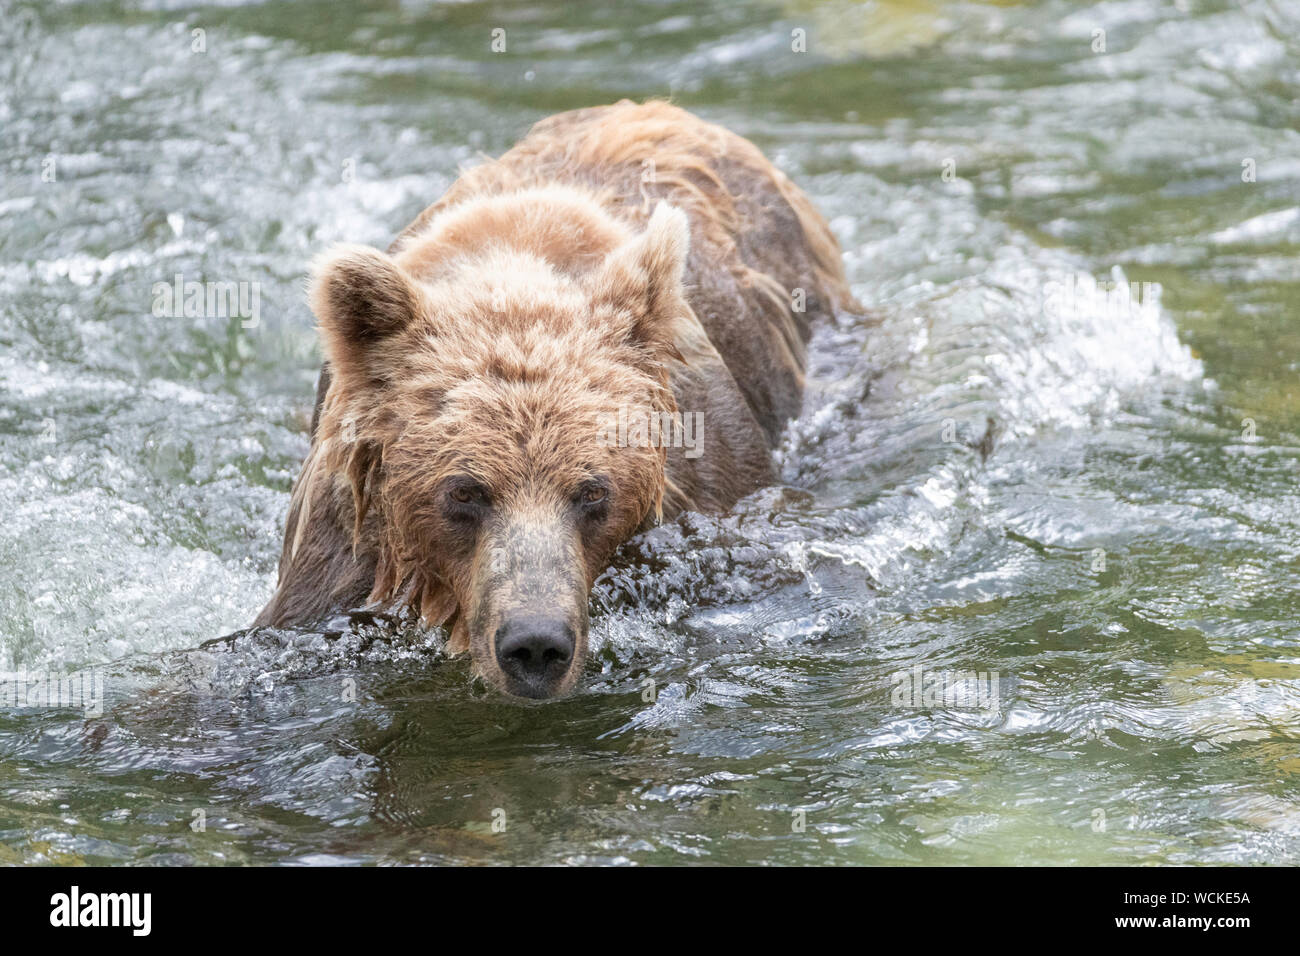 Grizzly Bear in the Nakina River hunting for Salmon, Ursus arctos horribilis, Brown Bear, North American, Canada, Stock Photo